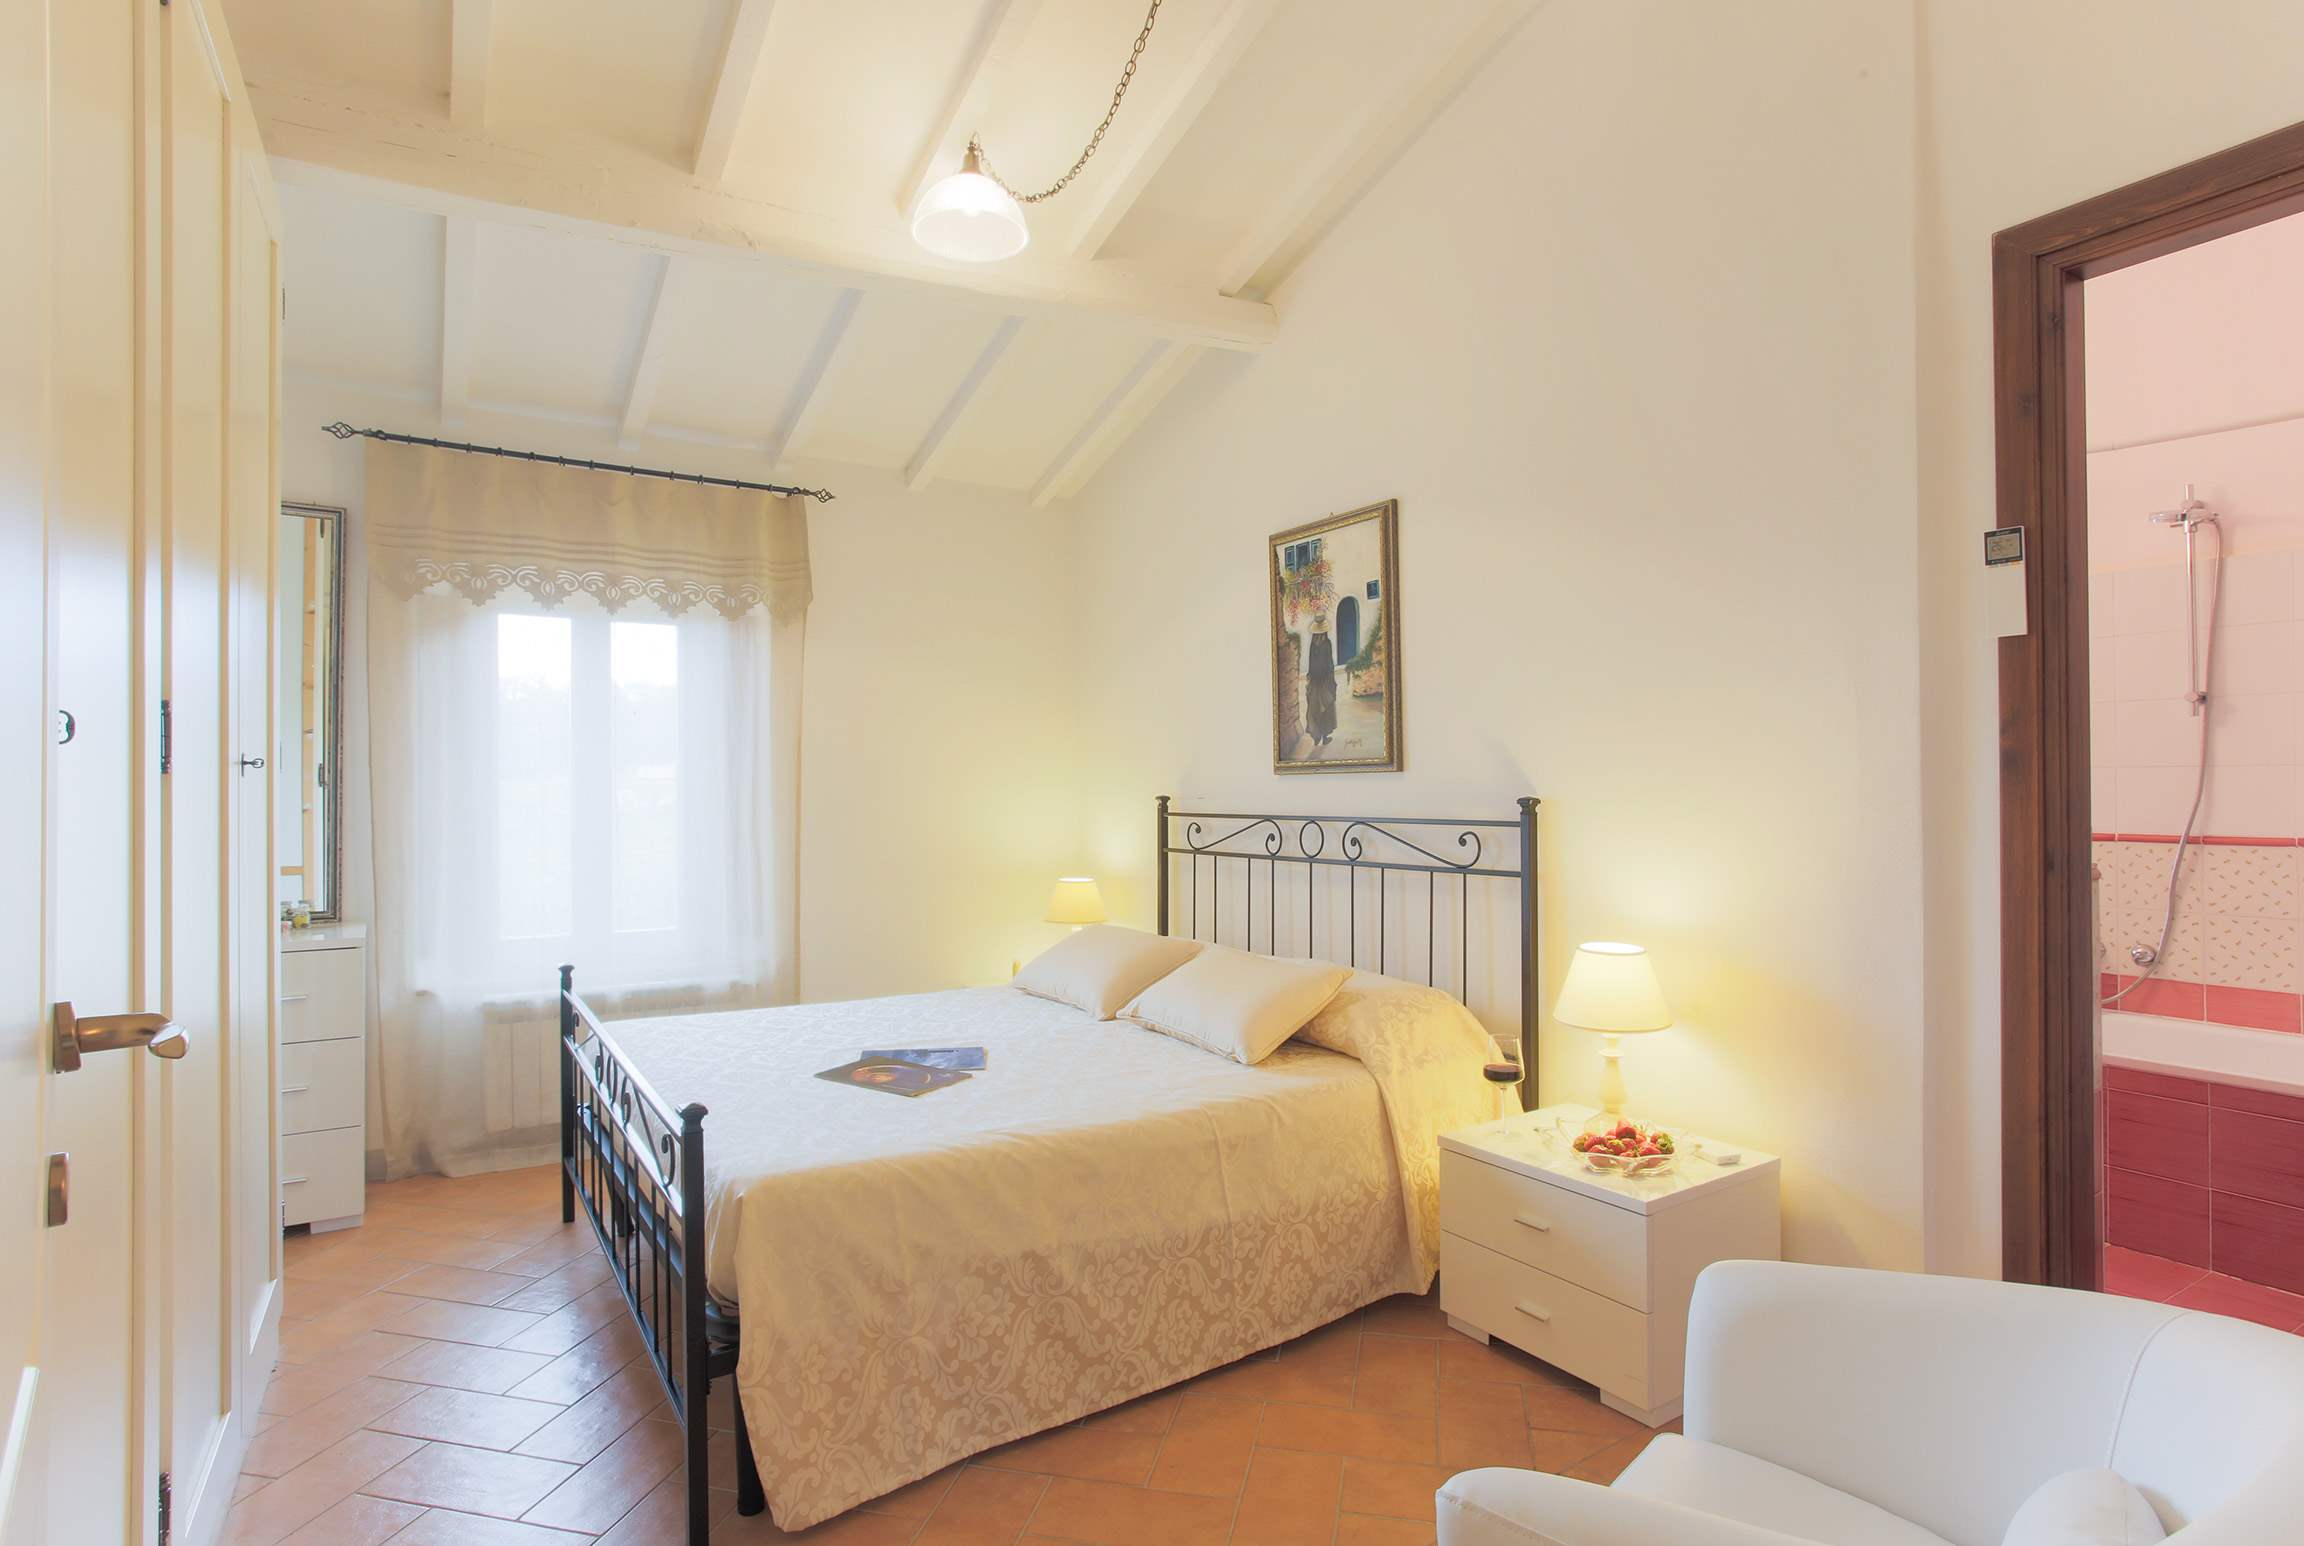 Casa Di Dante, 3 bedroom villa in North Tuscany - Pisa & Lucca Area, Tuscany Photo #23